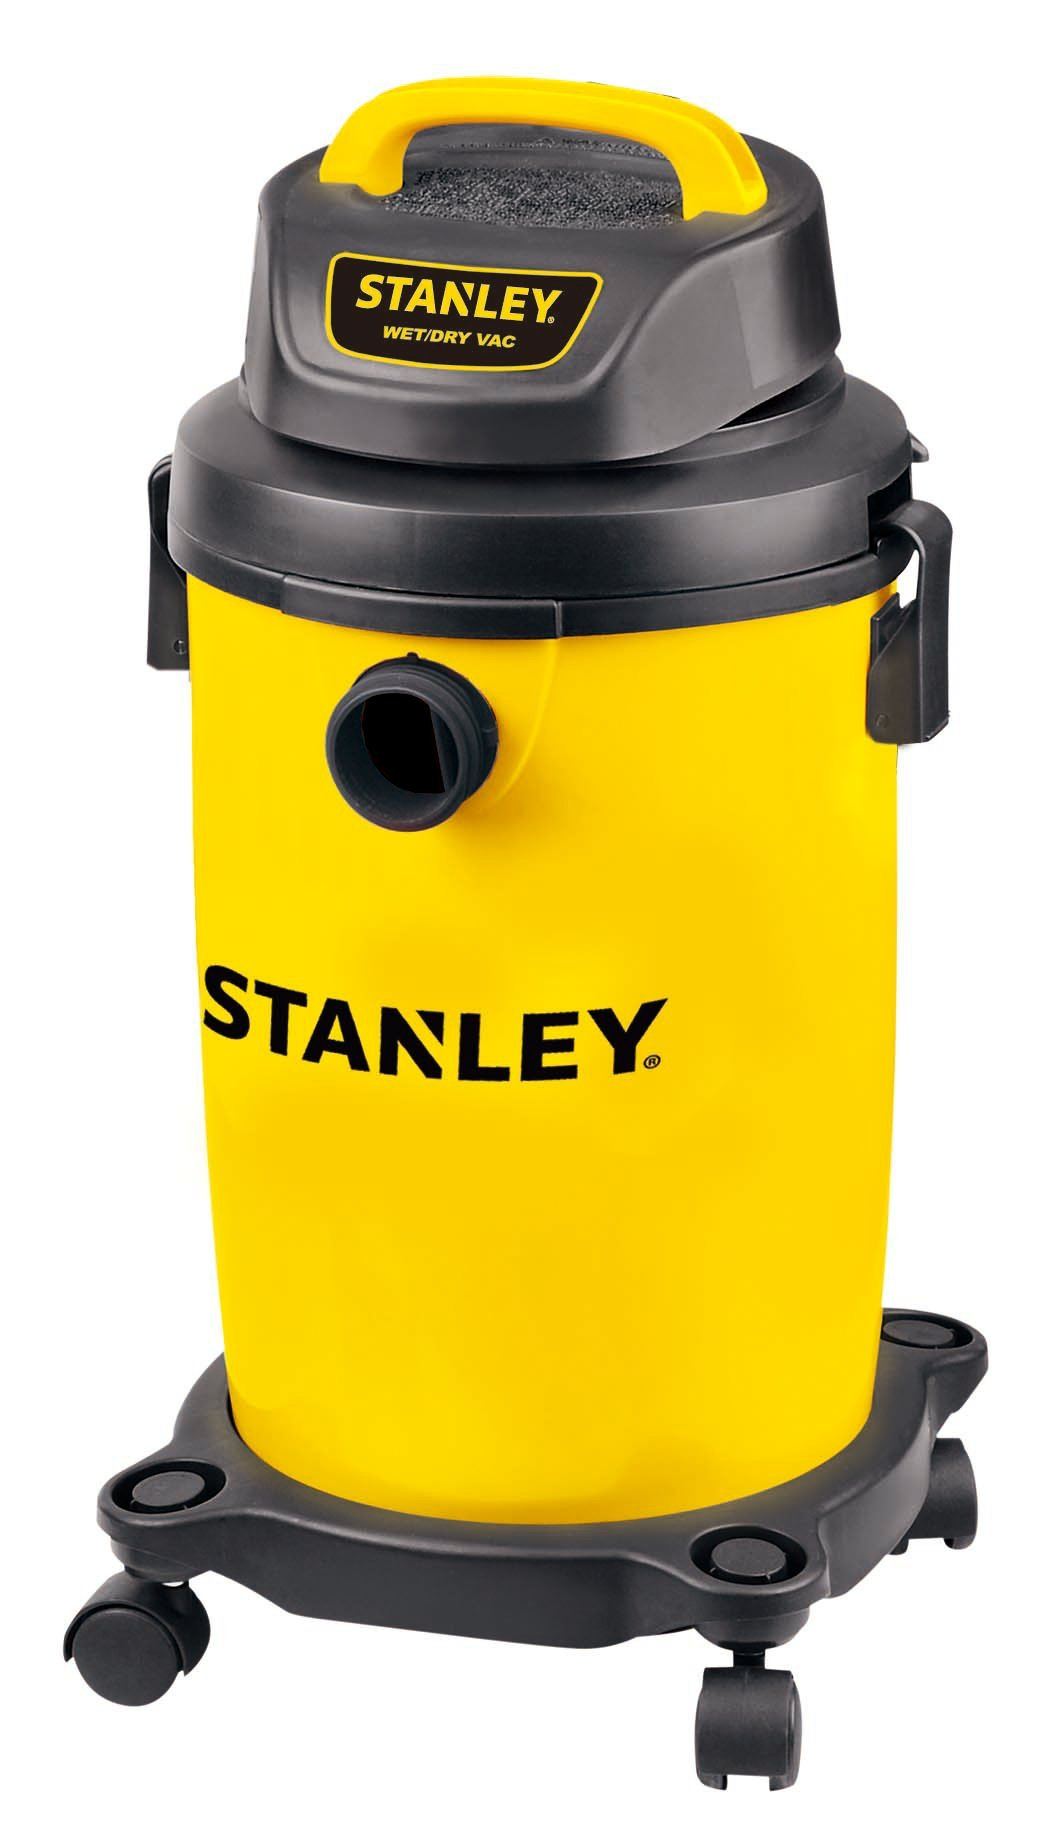 Stanley Wet/Dry Vacuum, 4.5 Gallon, 4 Horsepower by Stanley